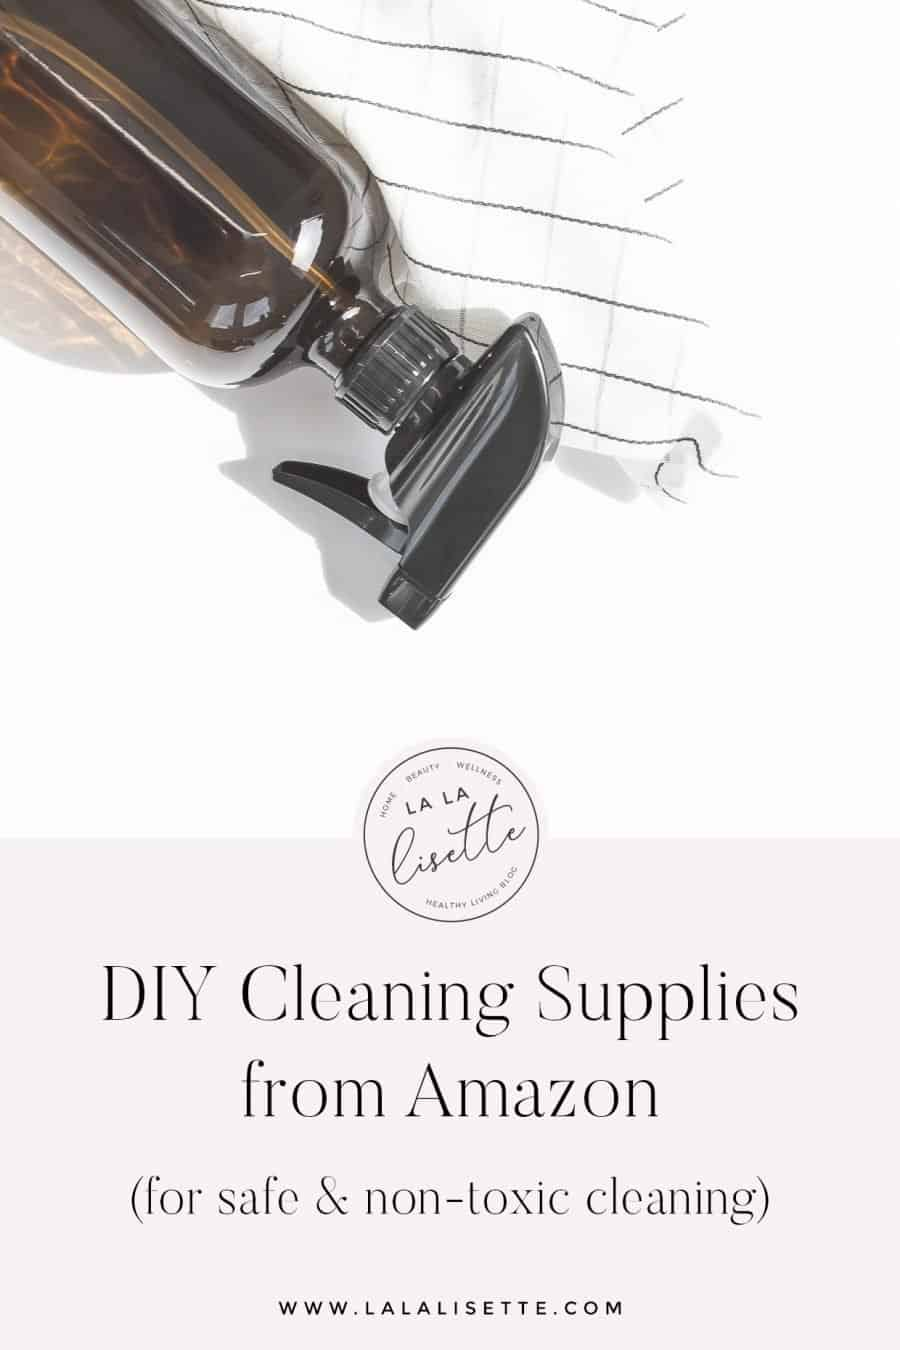 amber glass spray bottle with cotton cloth, text: DIY Cleaning Supplies from Amazon (for safe & non-toxic cleaning) www.lalalisette.com